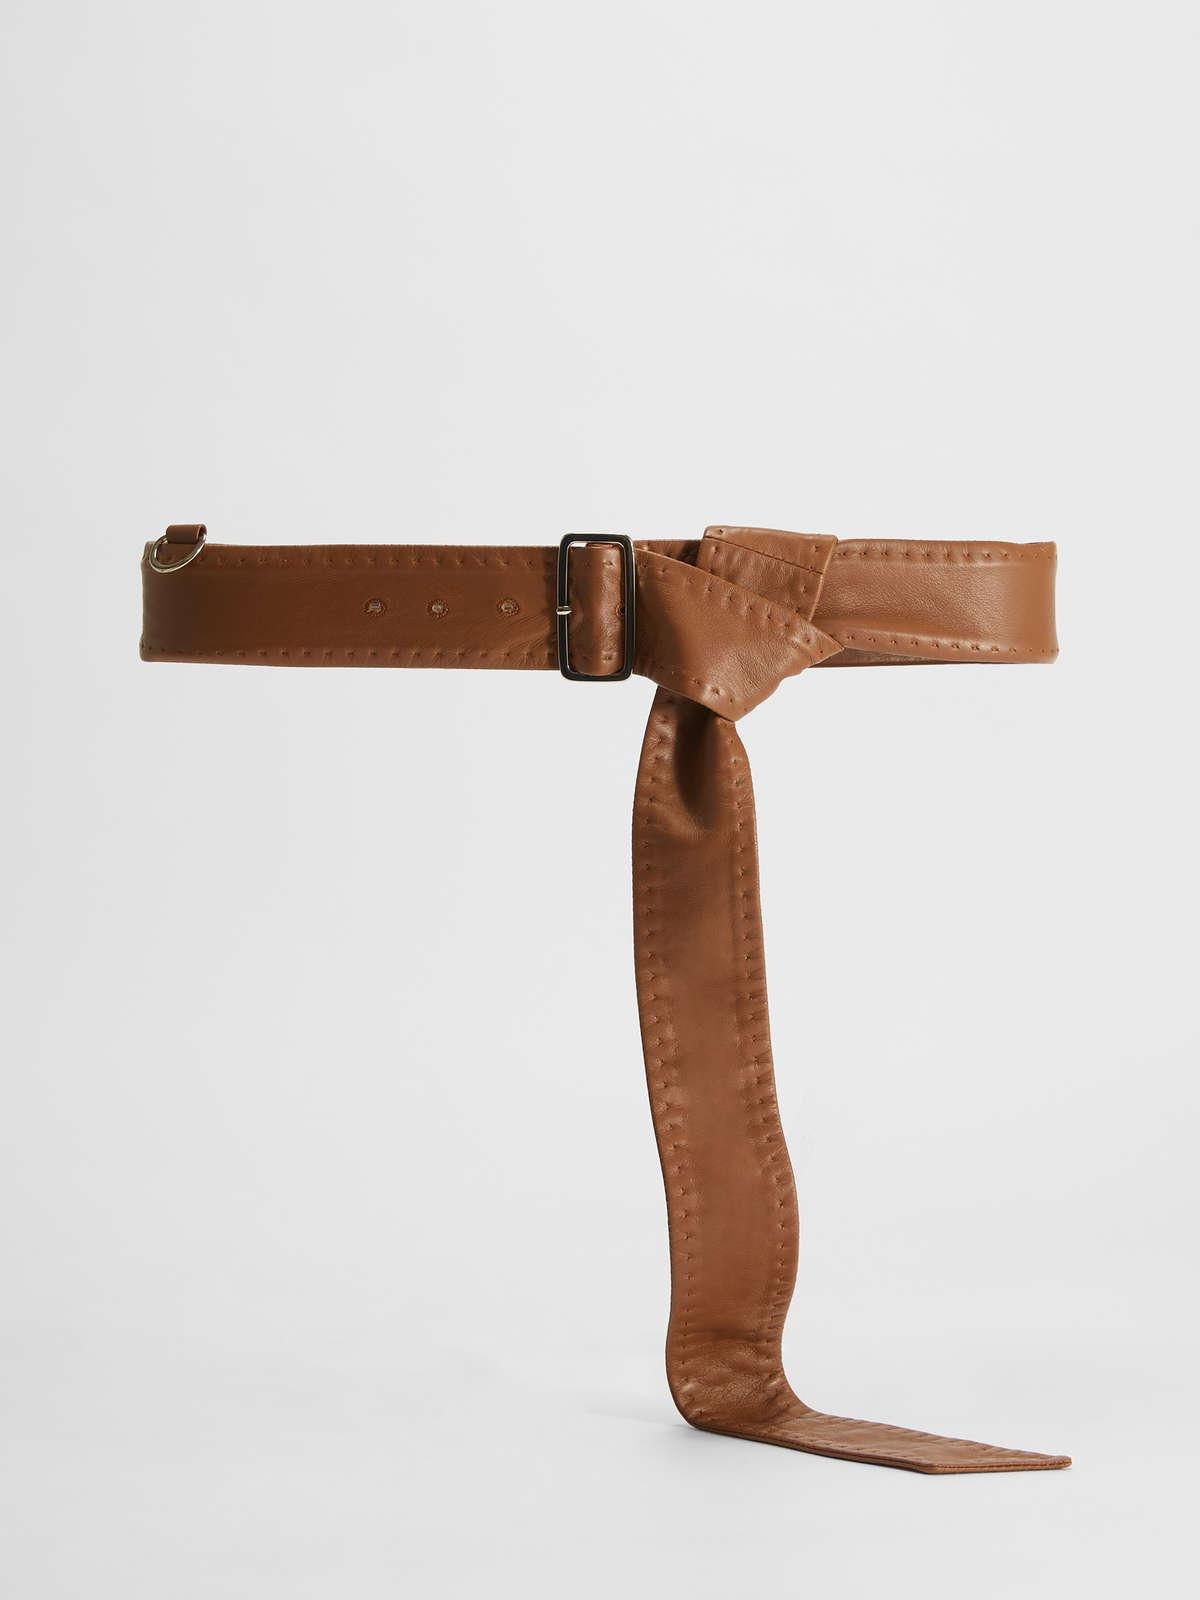 Womens Max Mara Belts | Men'S-Style Nappa Leather Belt With Buckle Caramel